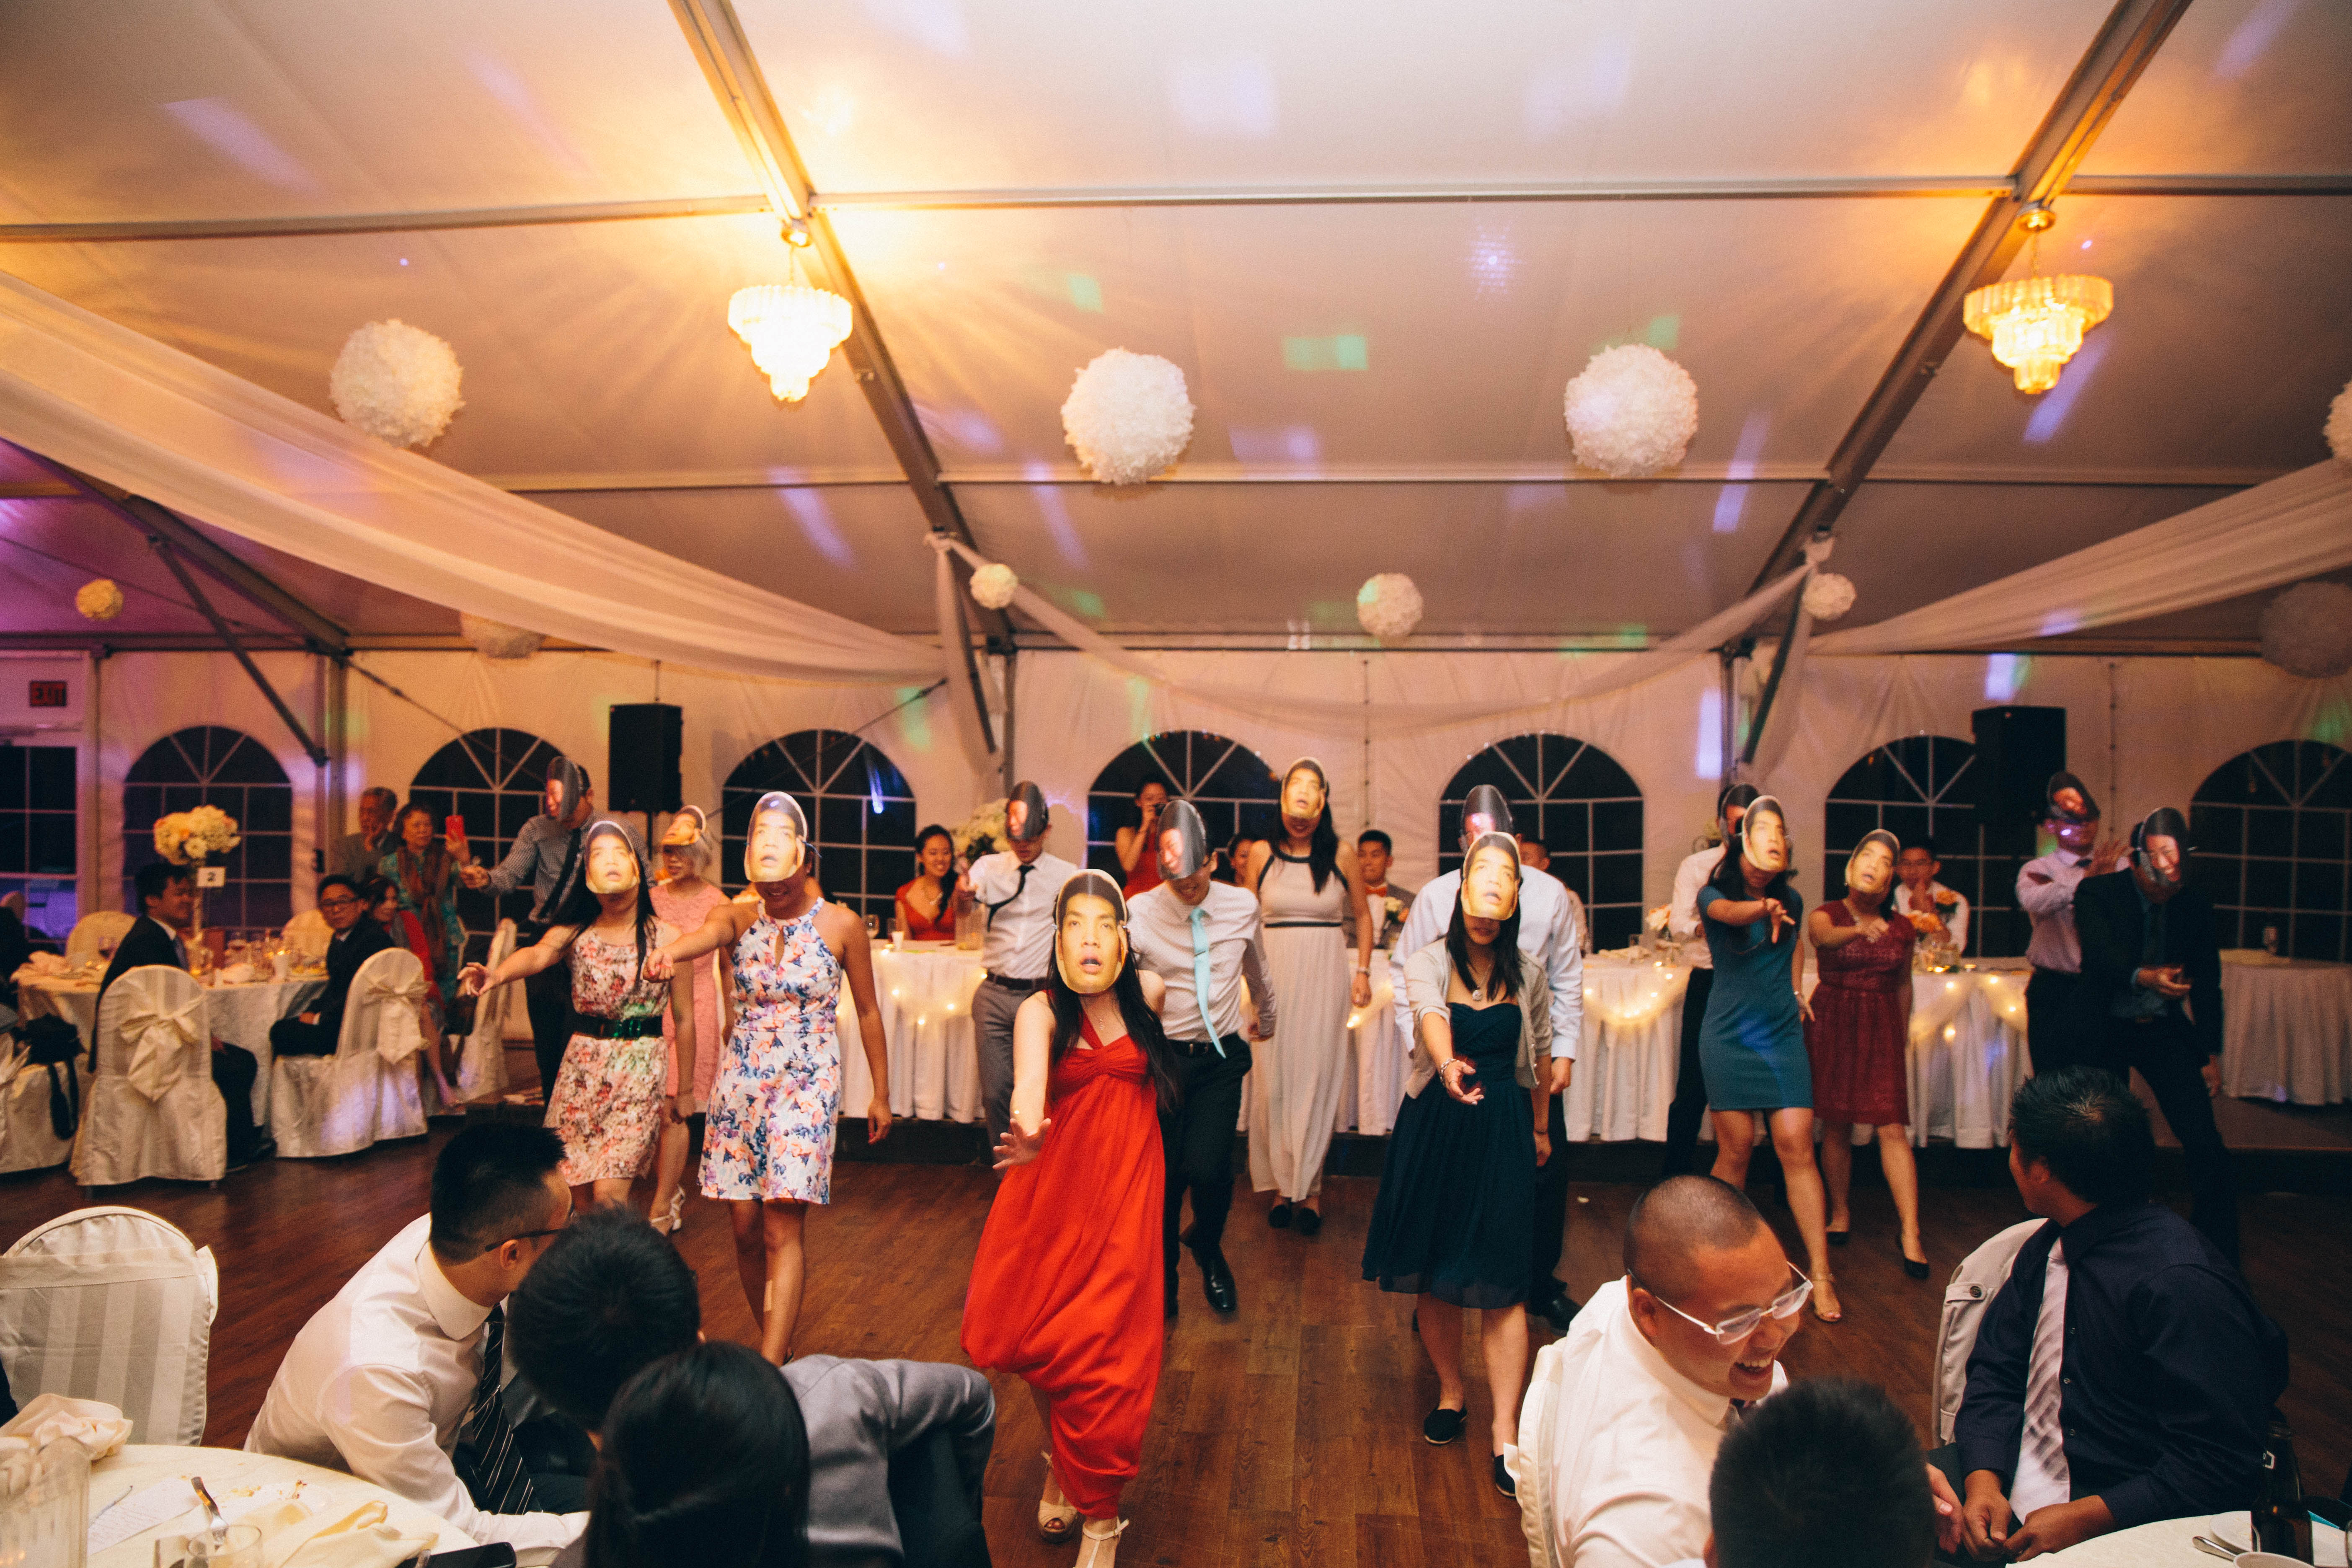 Flash mob dancing with bride's and groom's faces as masks at wedding reception at the Mandarin Country Club